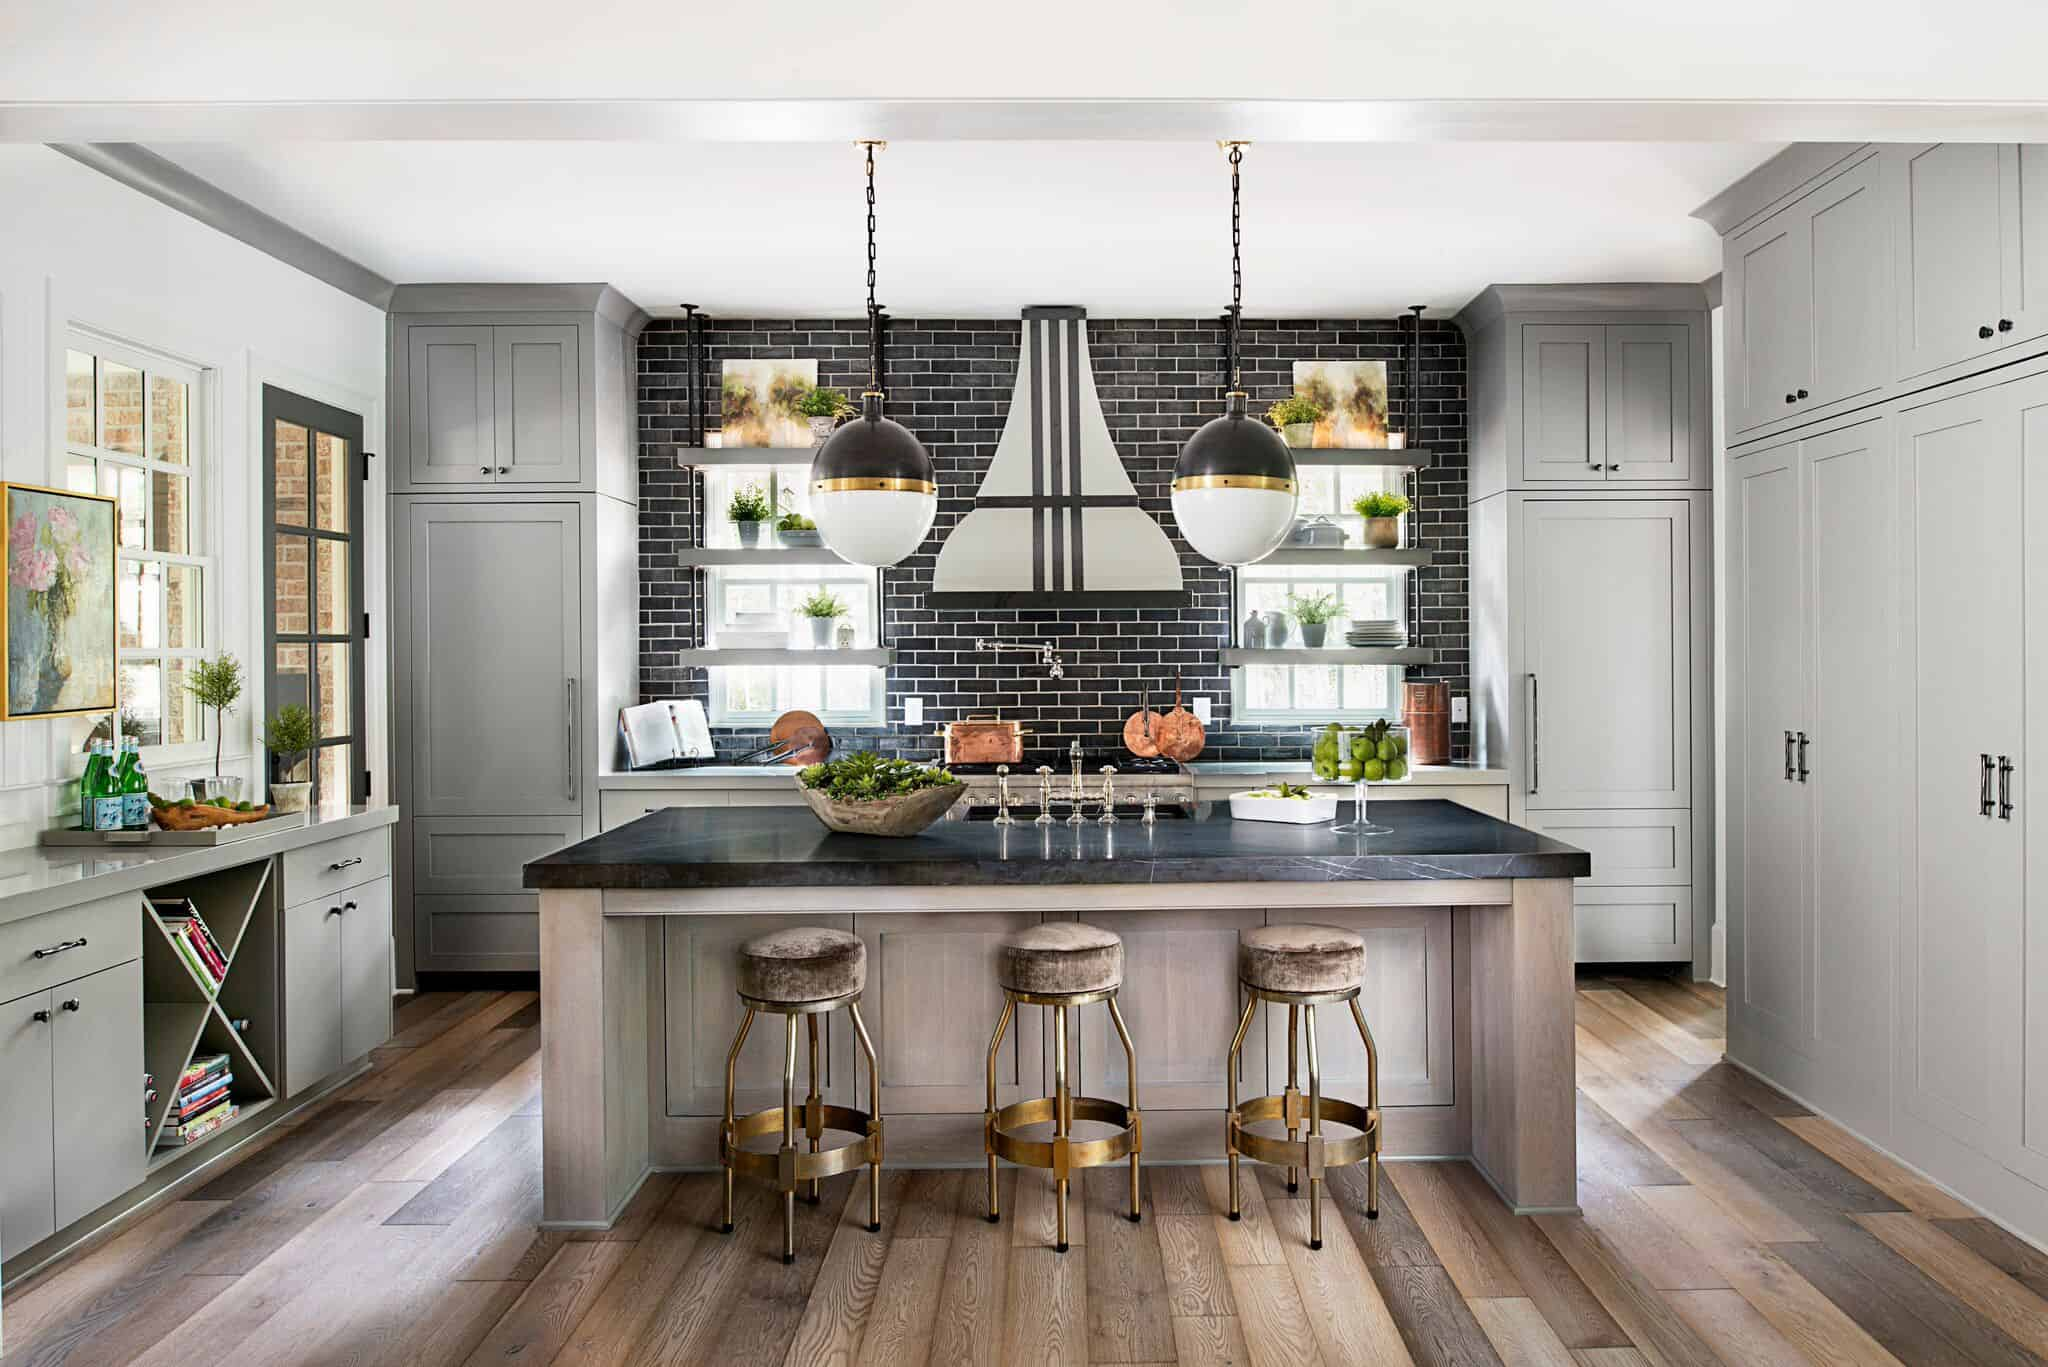 Therefore, this shade should be the main focal color of the kitchen space for the best outcome.